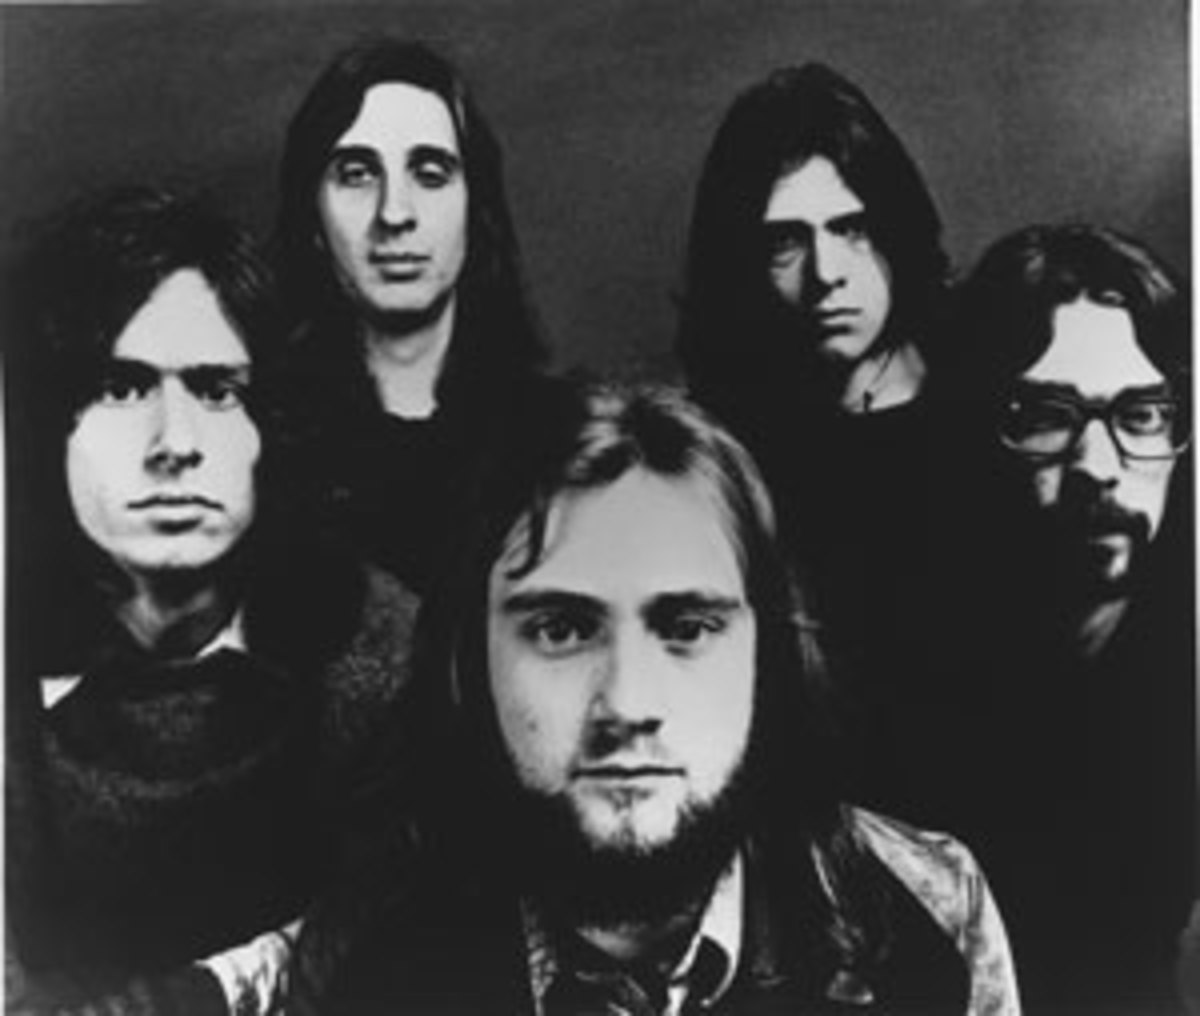 The Classic Genesis lineup (clockwise from left): Banks, Rutherford, Gabriel, Hackett and Collins. Publicity photo